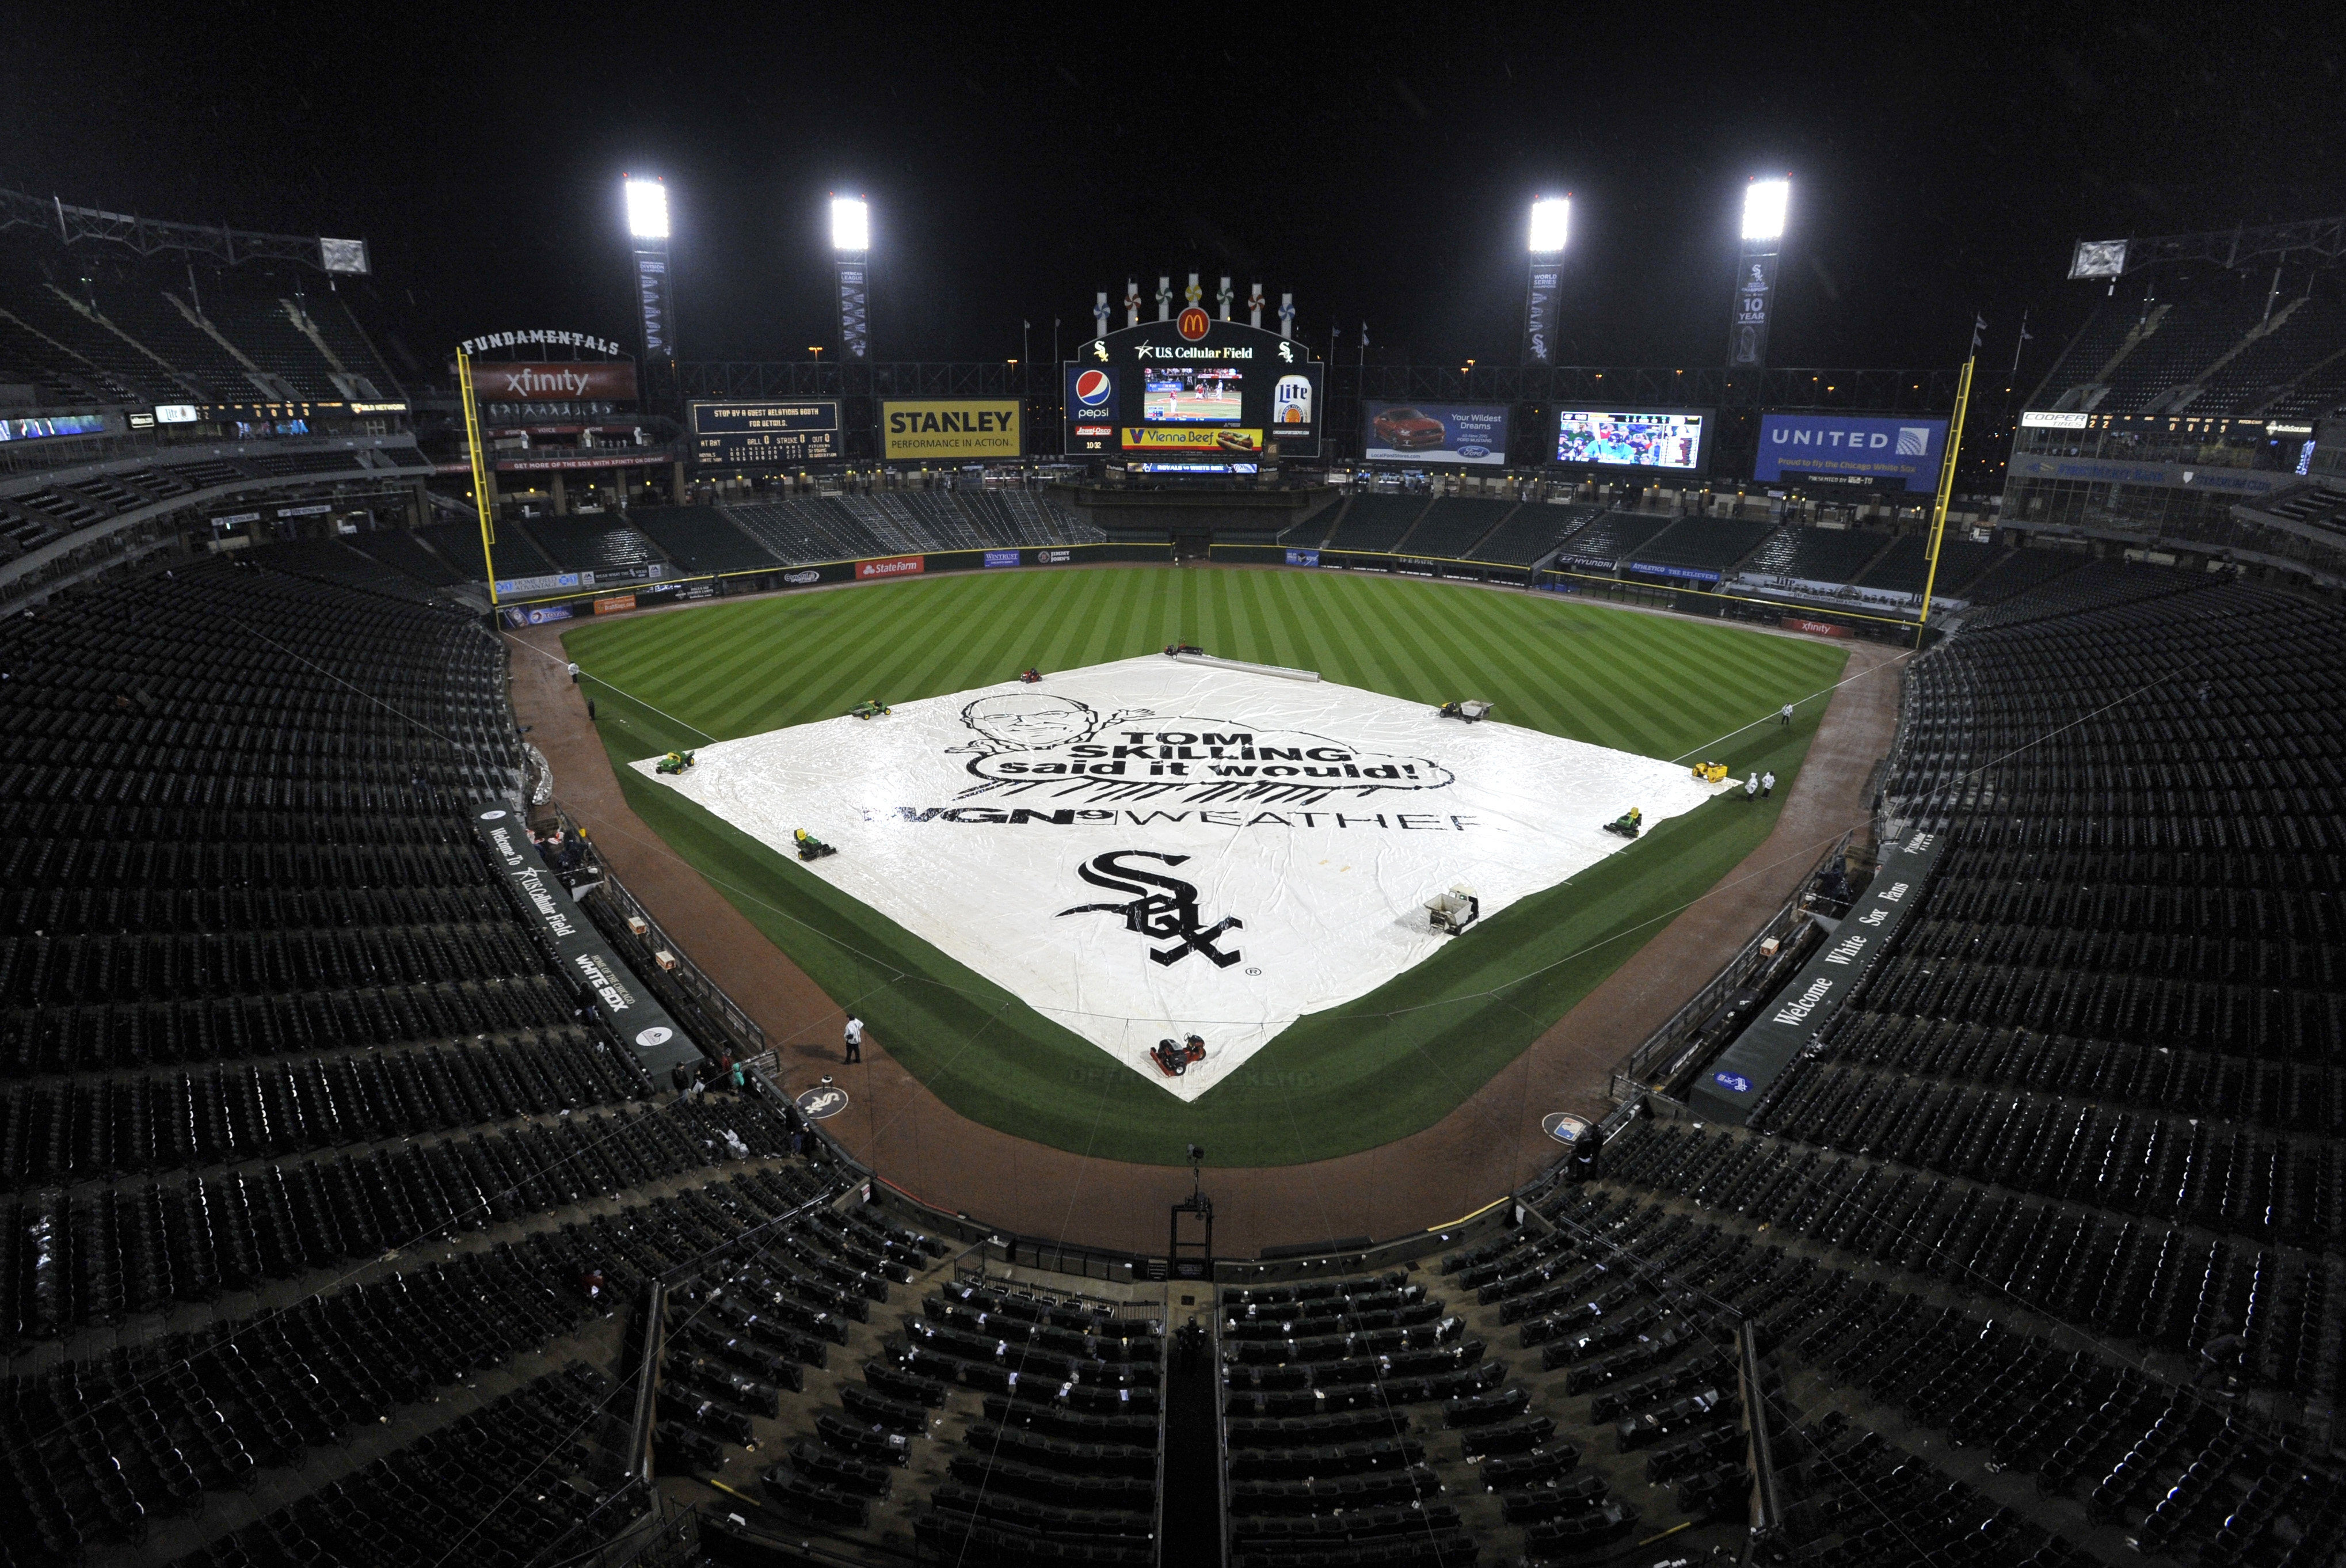 The tarp covers the infield at U.S. Cellular Field during a rain delay in a baseball game between the Chicago White Sox and Kansas City Royals after eight innings with the score 2-2, Friday, April 24, 2015, in Chicago. (AP Photo/Paul Beaty)